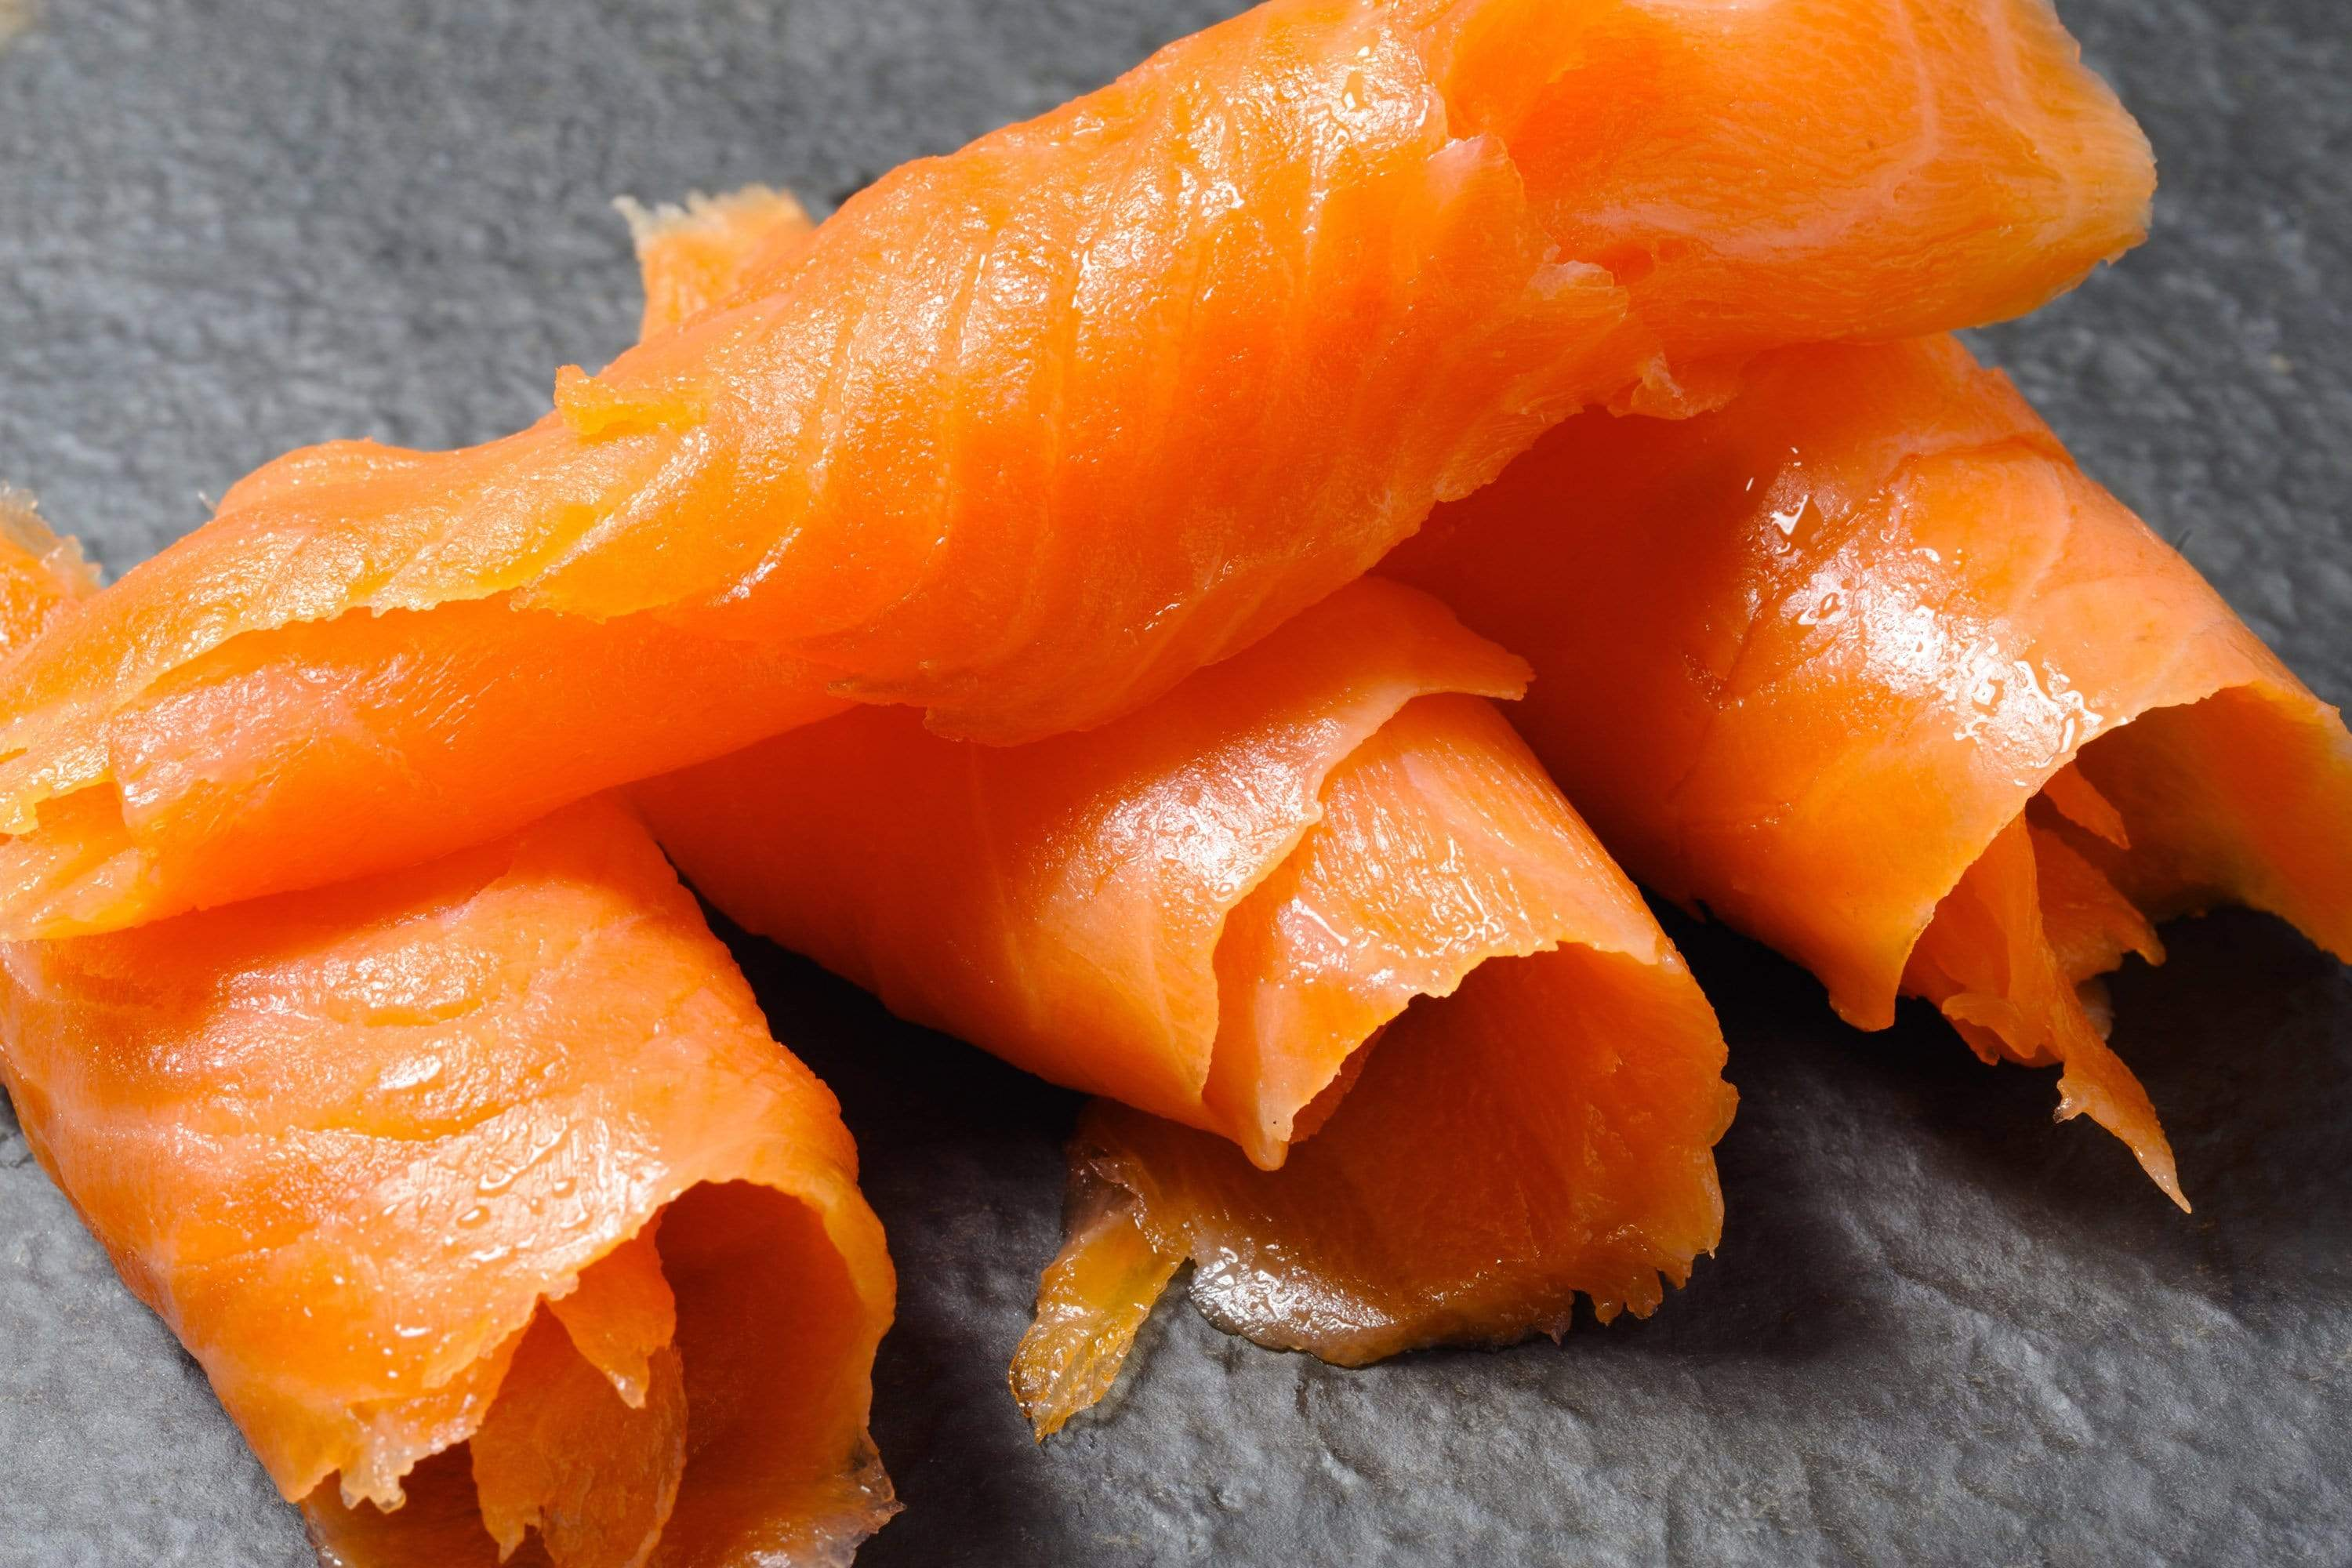 Organic Smoked Lox, 8oz from Cap'n Mike's Holy Smoke - San Francisco Farmers Market Delivery